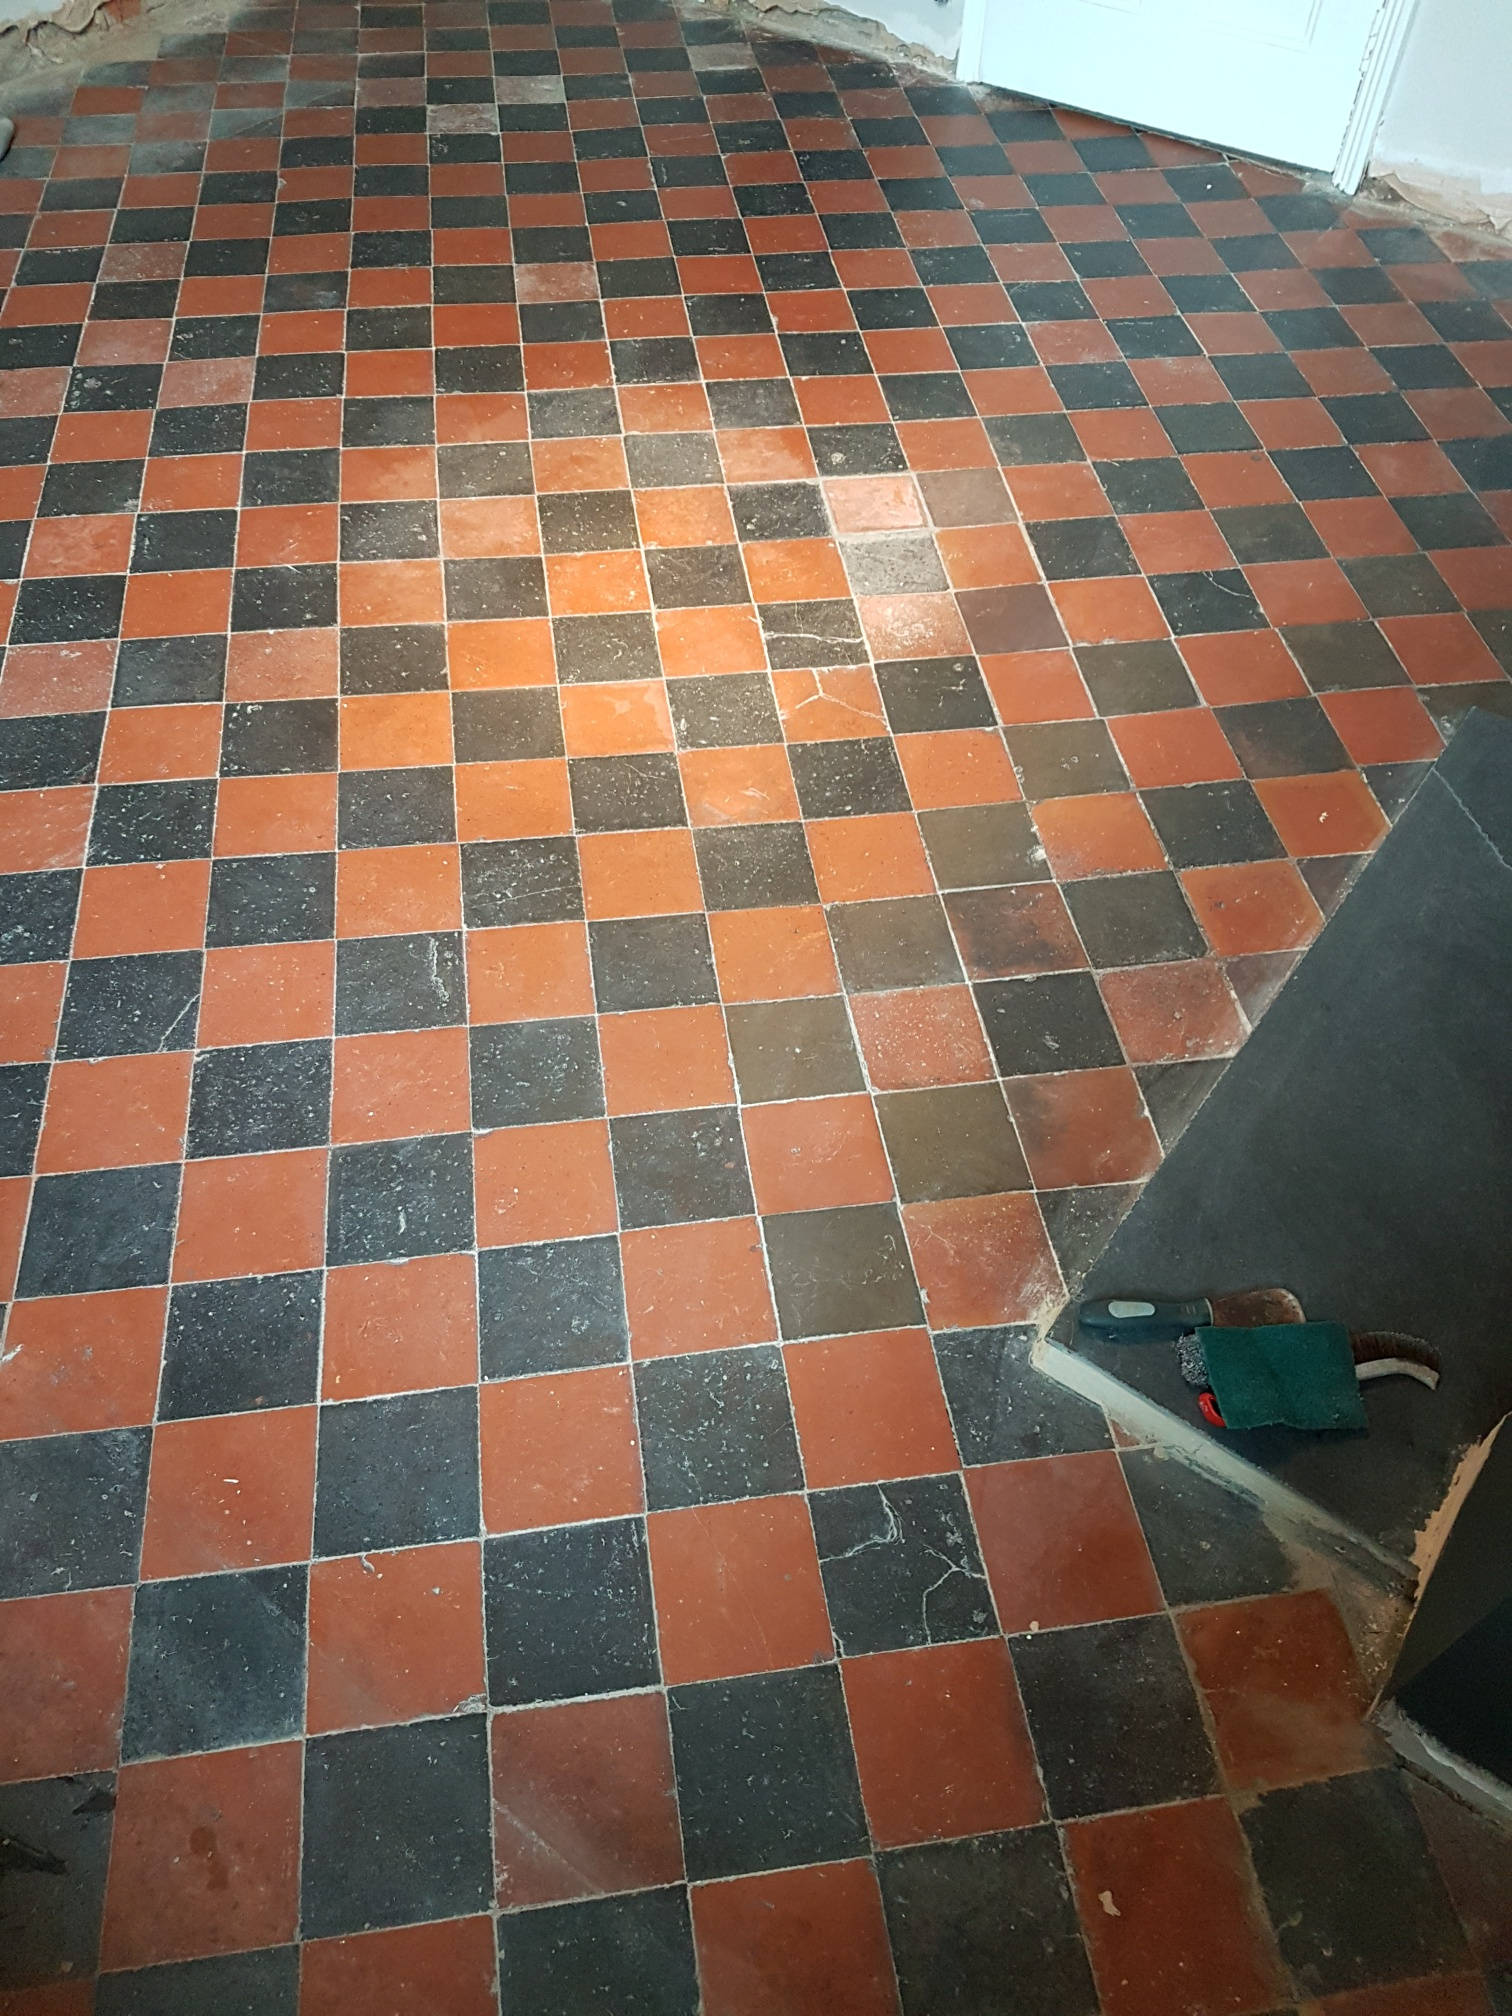 Removing Paint Spots From Black And Red Quarry Tiles In